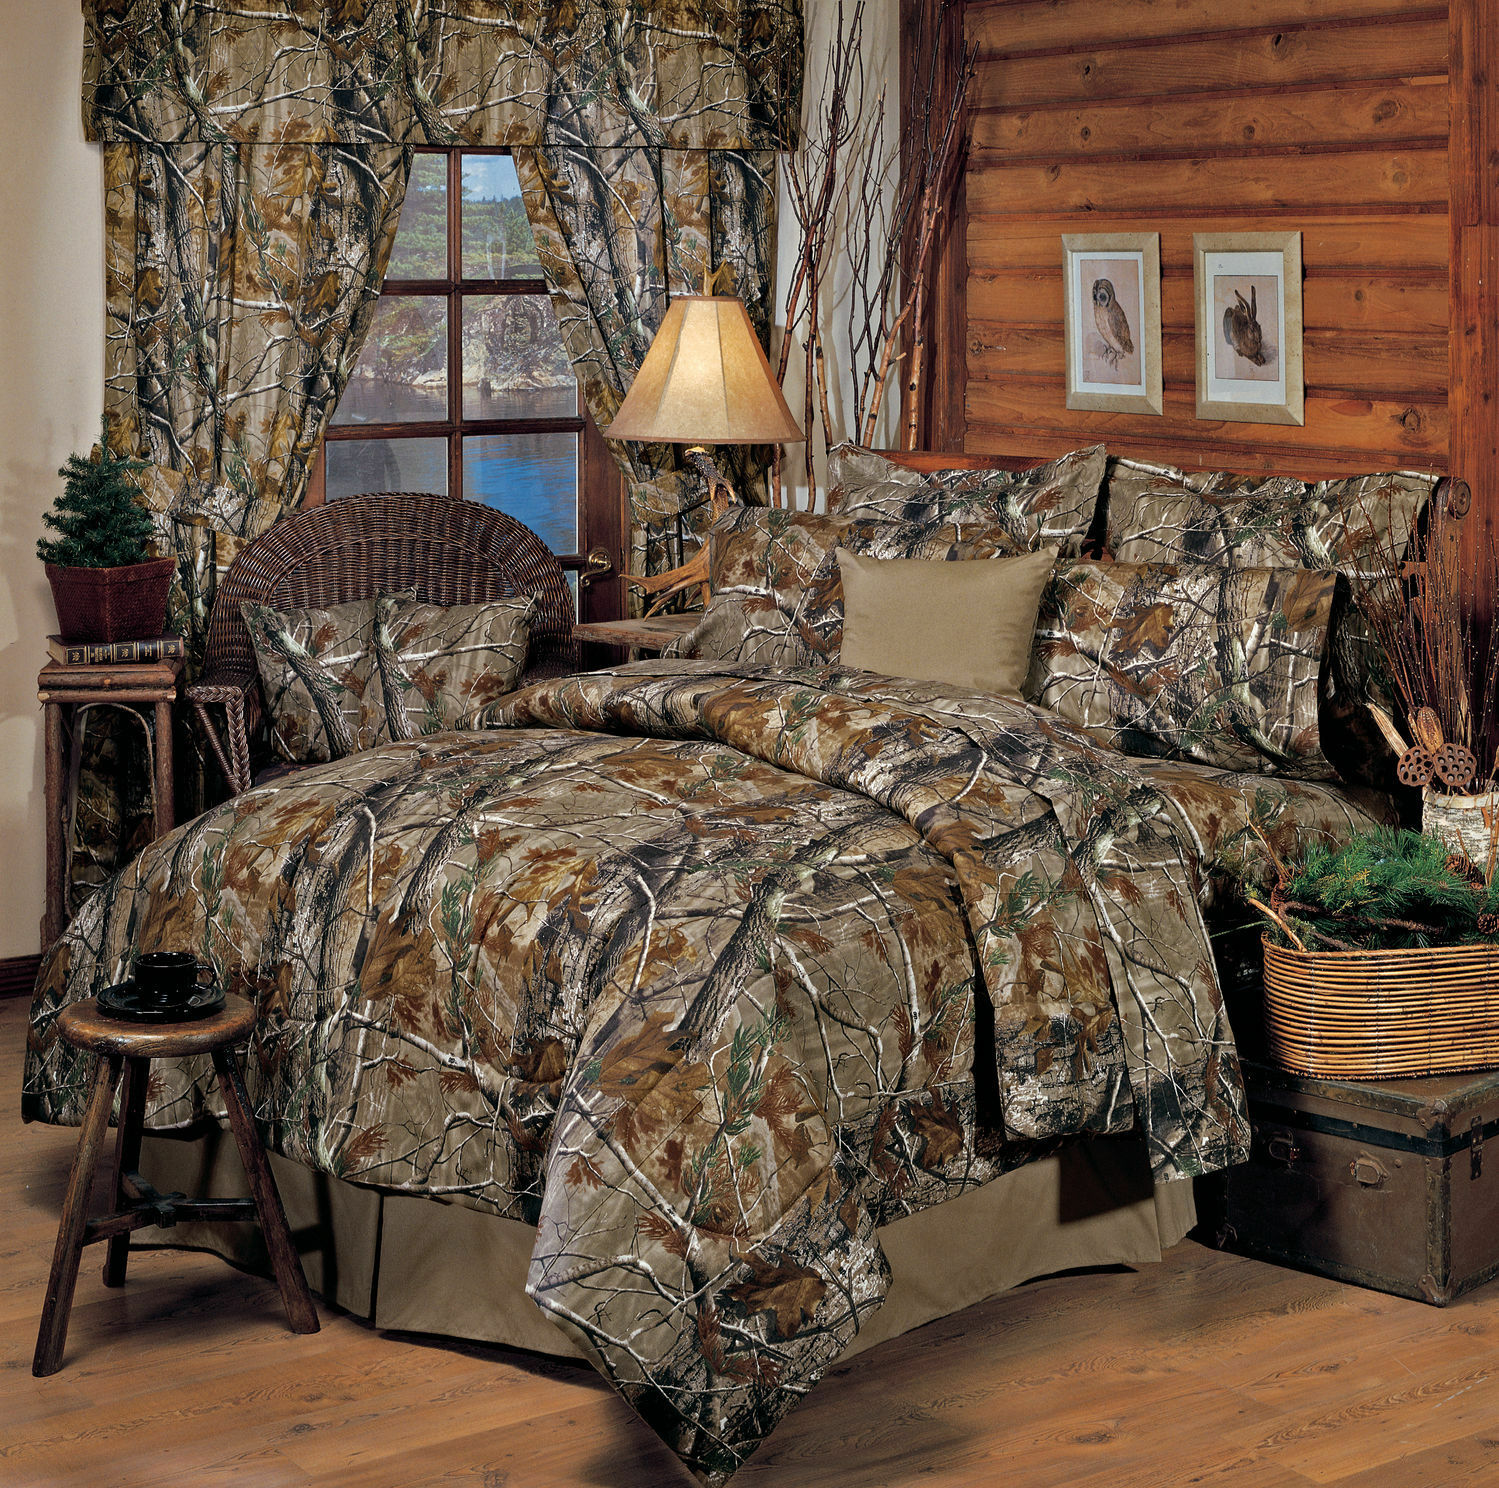 Realtree Camo Comforter Bedding Set, Camouflage